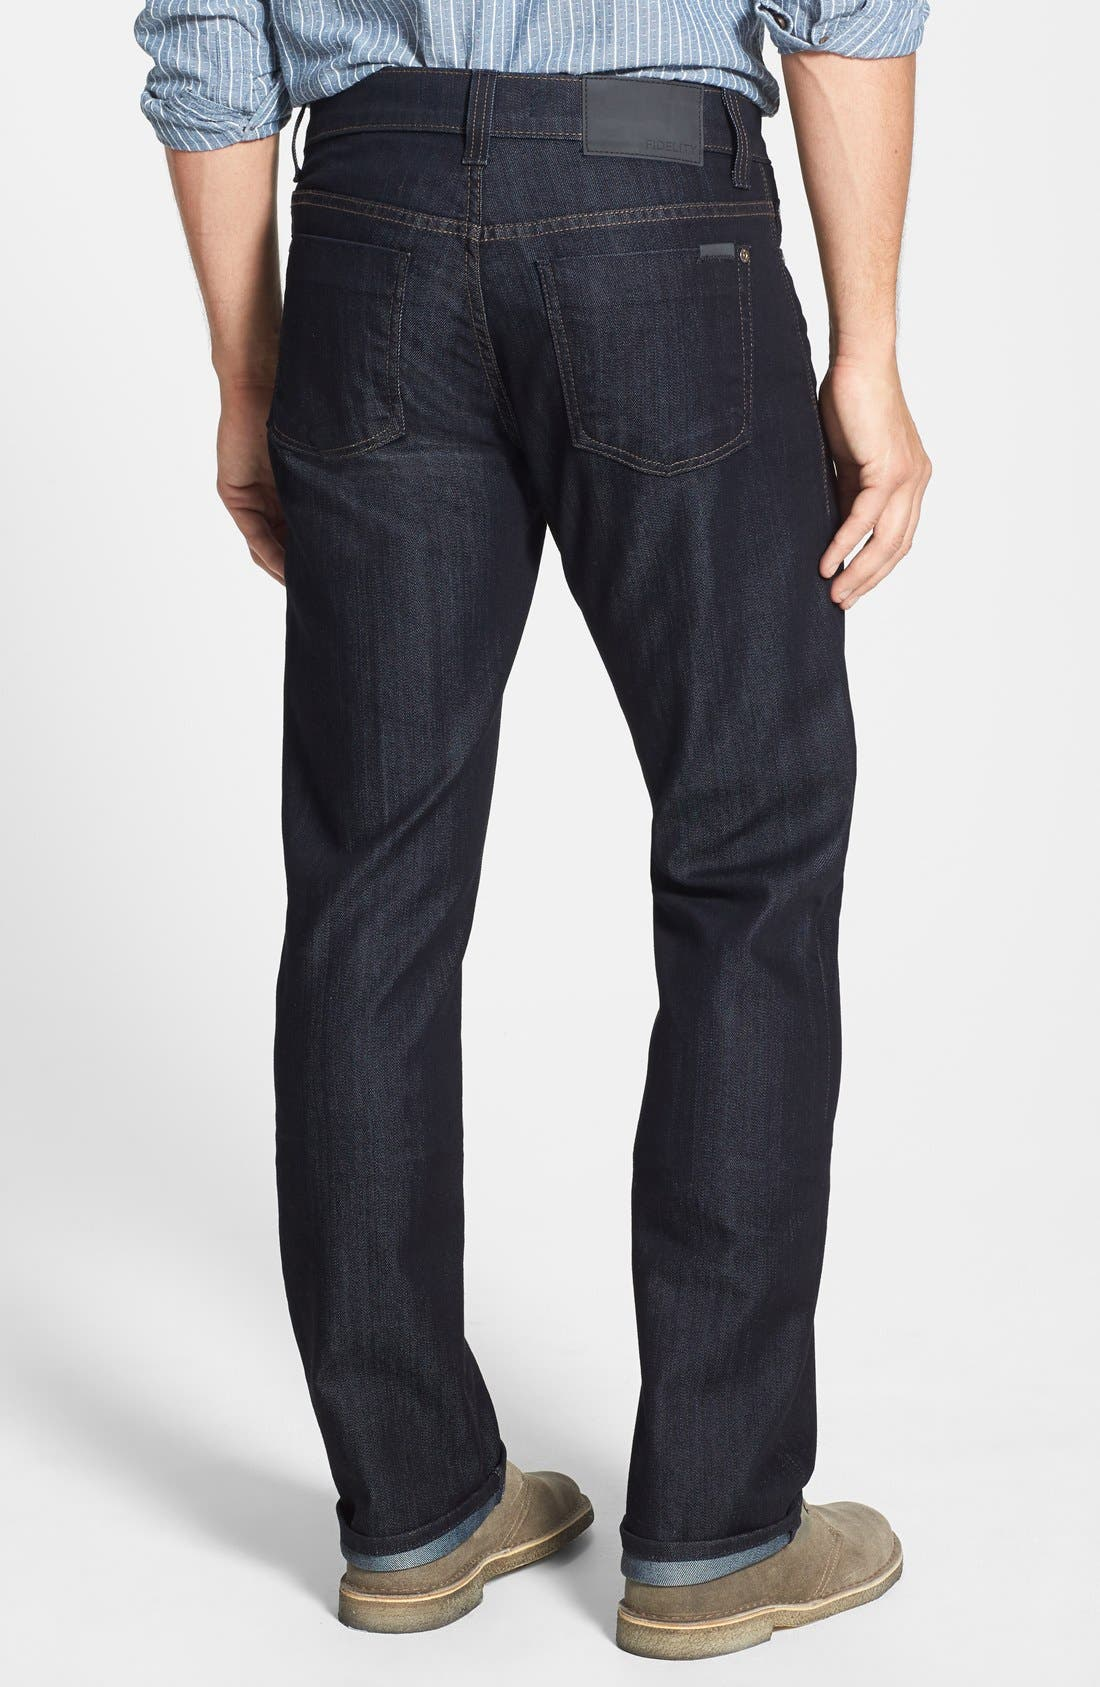 50-11 Relaxed Fit Jeans,                             Alternate thumbnail 3, color,                             REVOLUTION RINSE